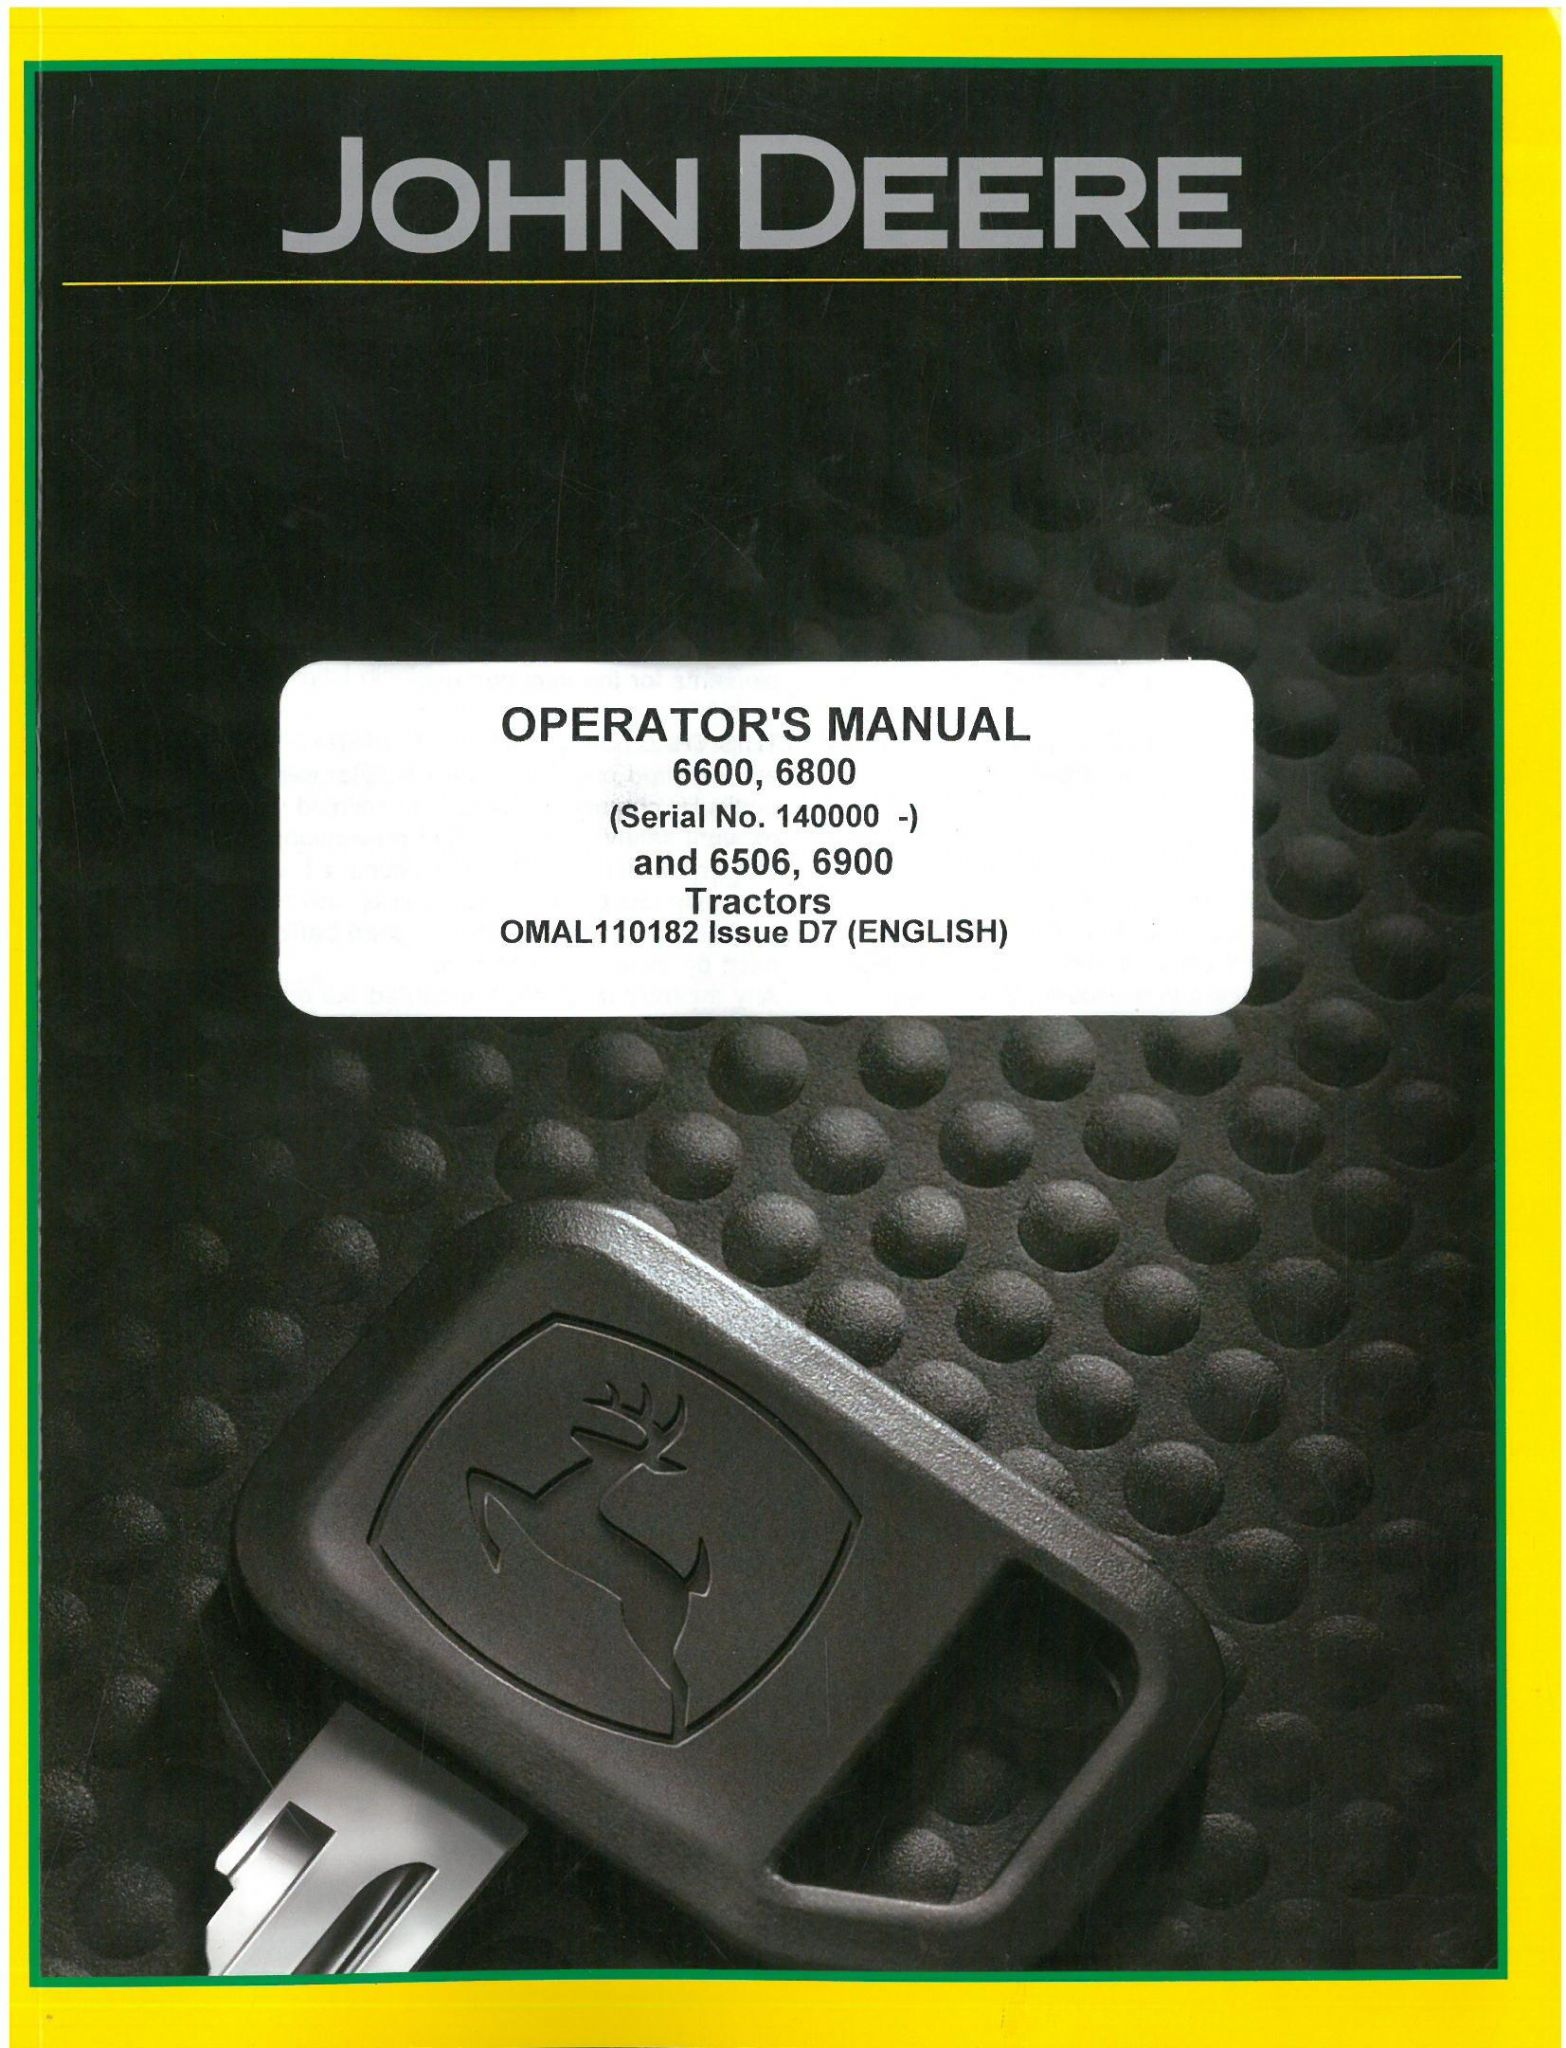 john deere tractor 6600 6800 6506 6900 operators manual original rh agrimanuals com john deere 750 tractor operators manual john deere 8400 tractor operators manual